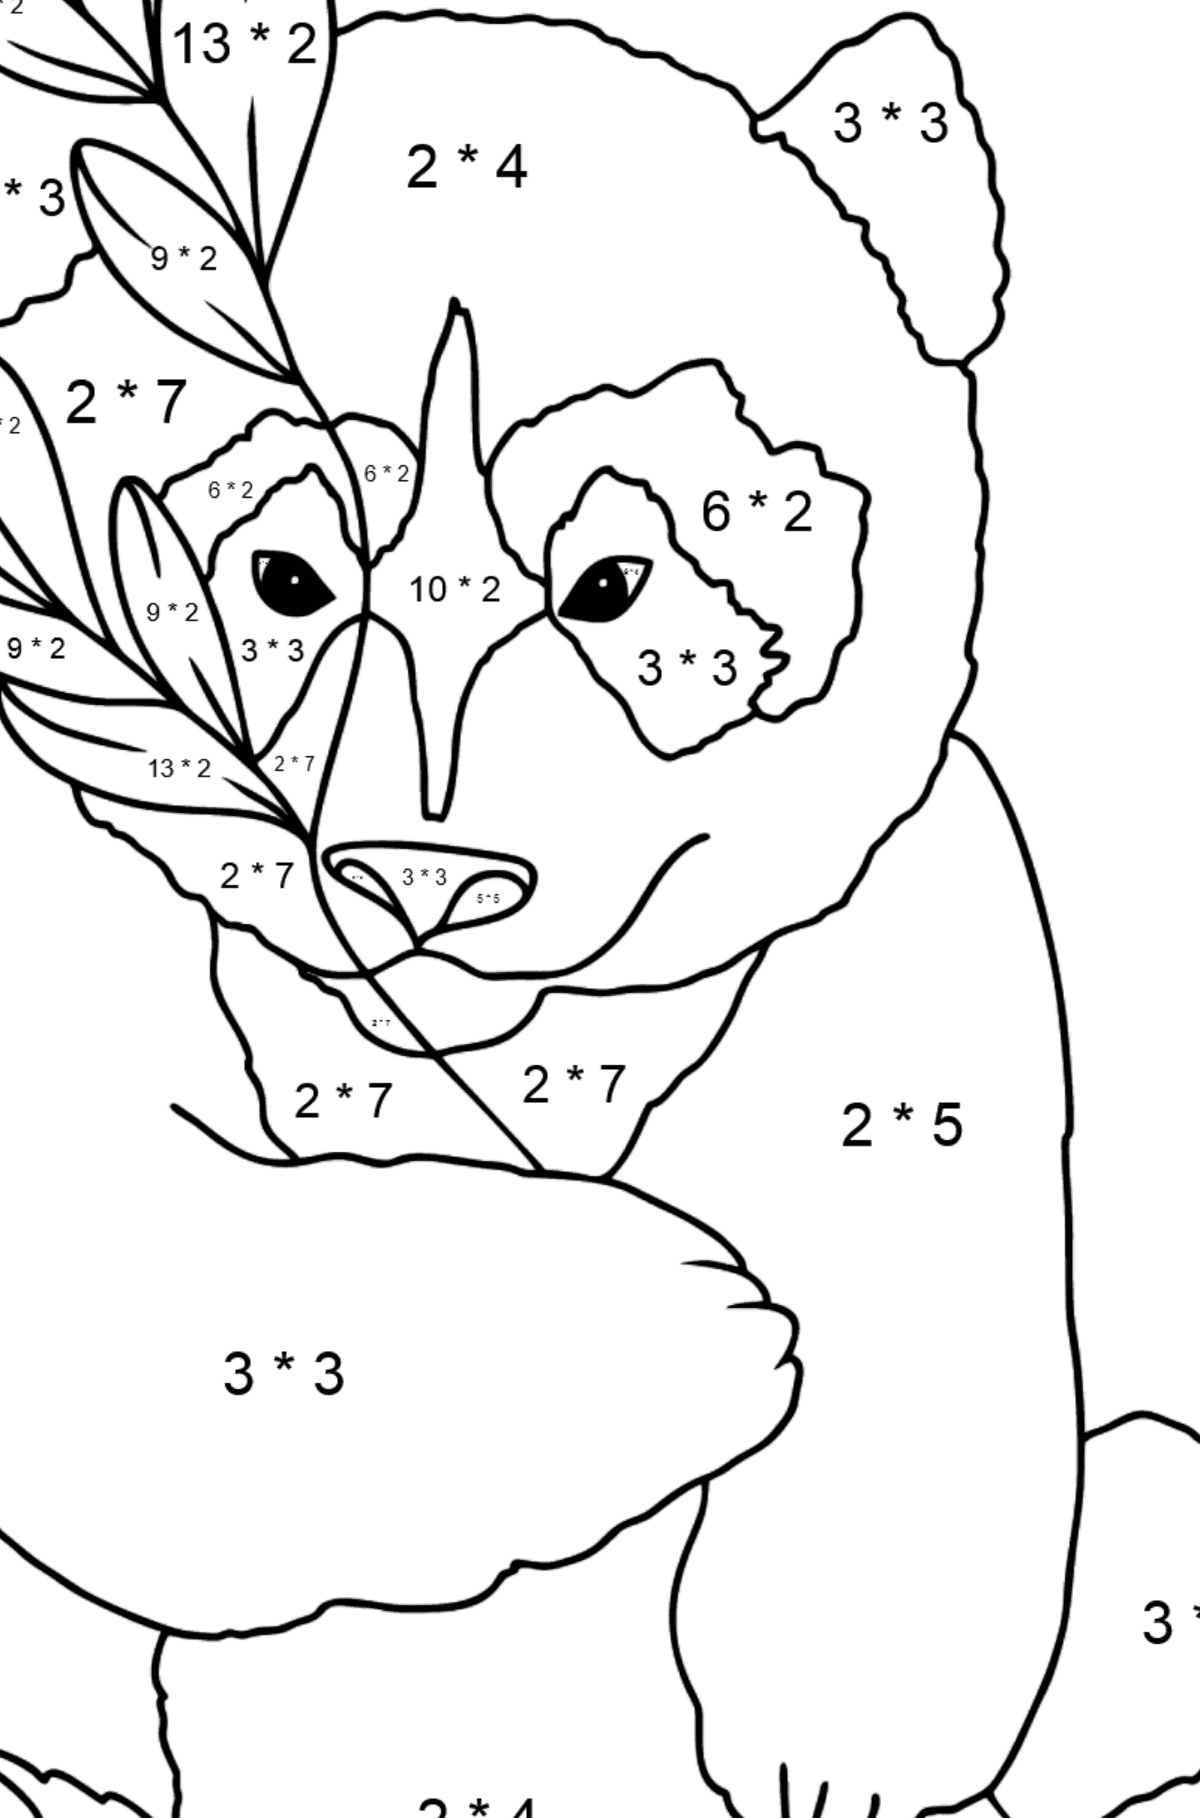 Coloring Page - A Panda is Having a Rest - Math Coloring - Multiplication for Kids